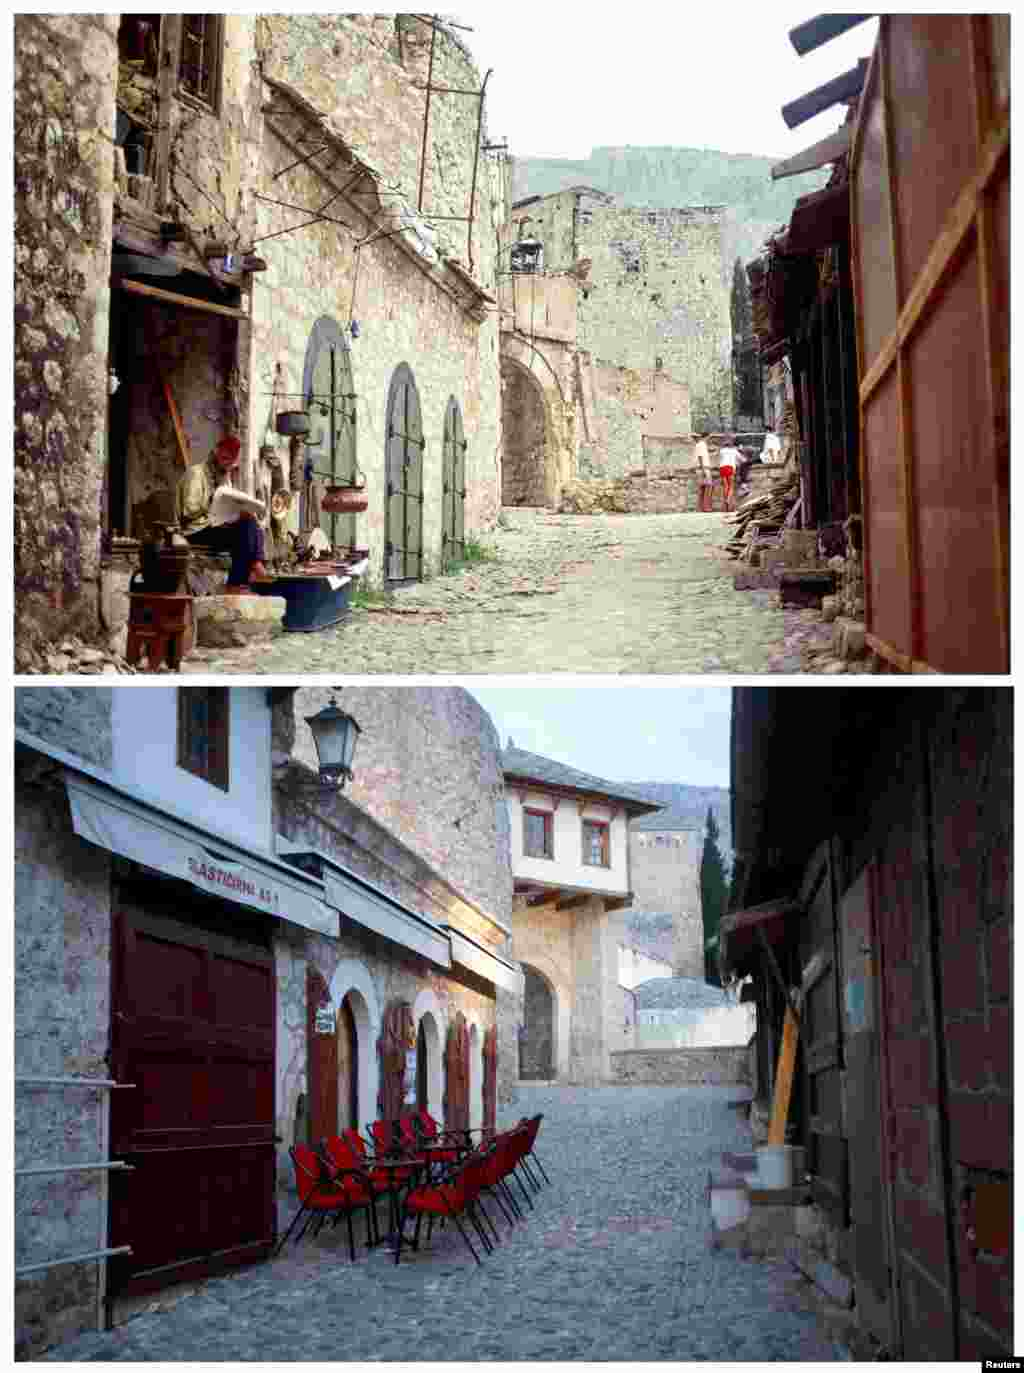 A man reads on the steps of a building in the destroyed section of the old city of Mostar in June 1993. Beneath this photo is the same street on February 23, 2013.